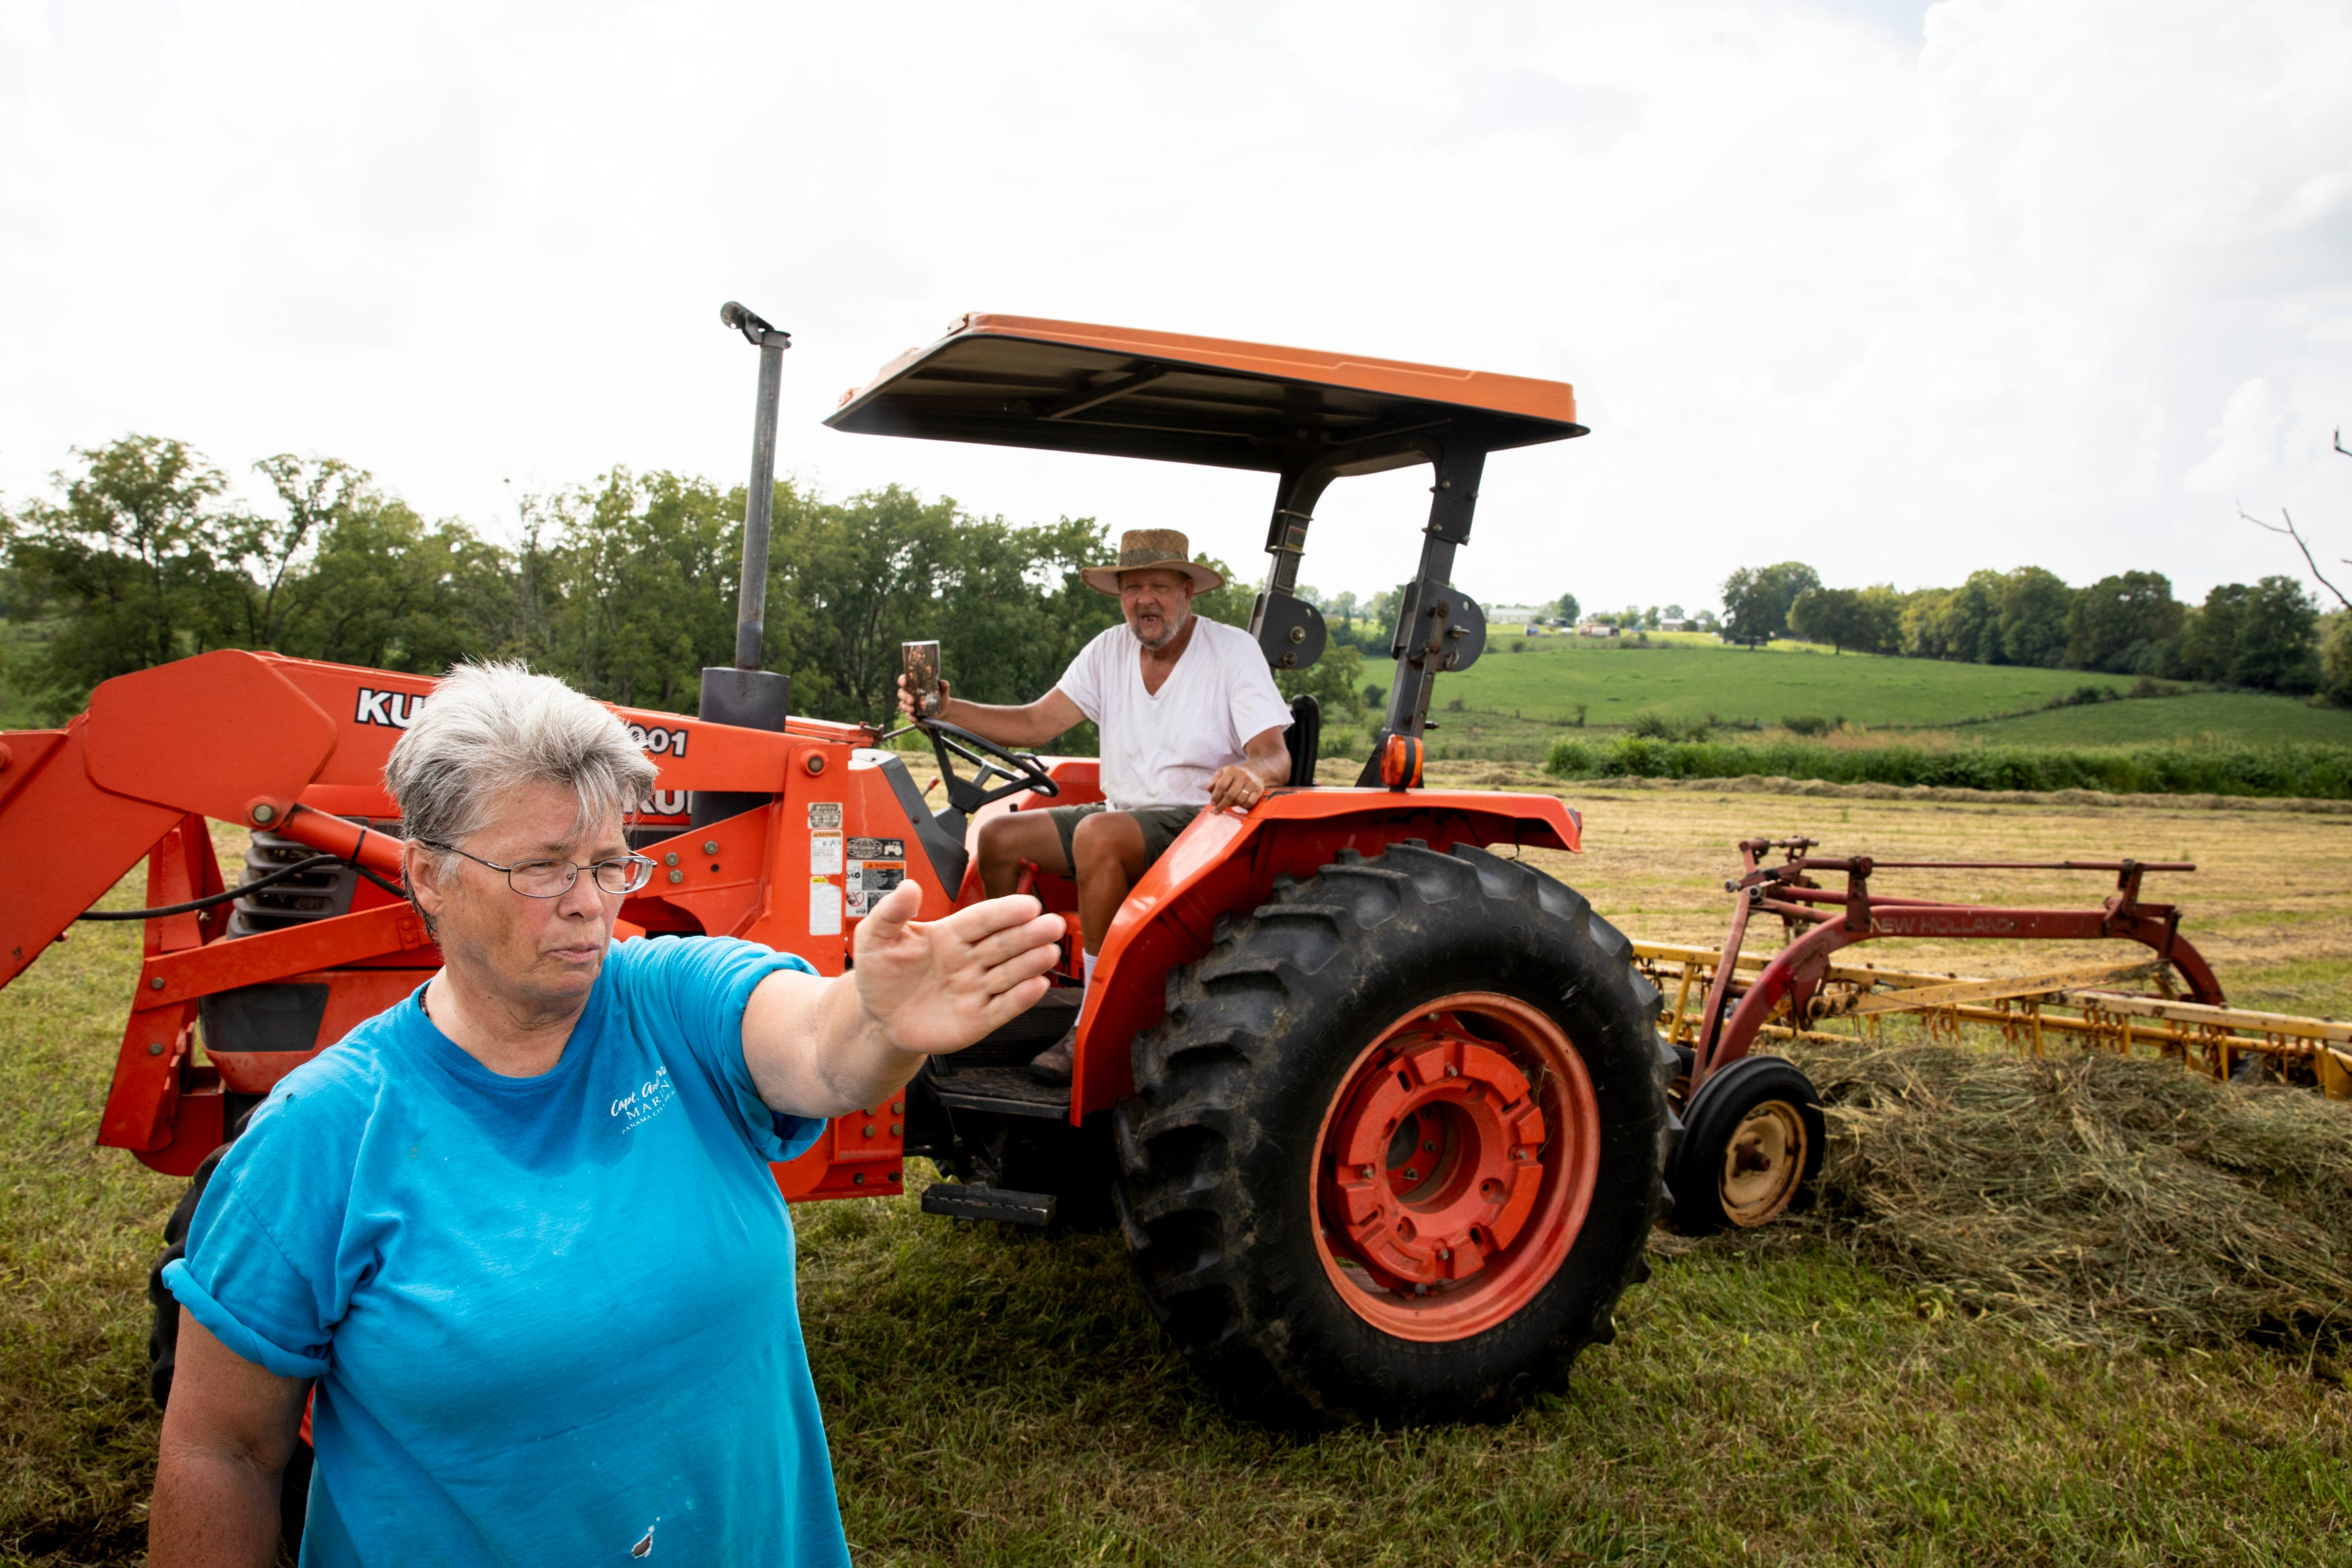 Pam McCauley talks with her husband while he breaks from mowing their field in Harrison County, Ky., on Wednesday, August 25, 2021.